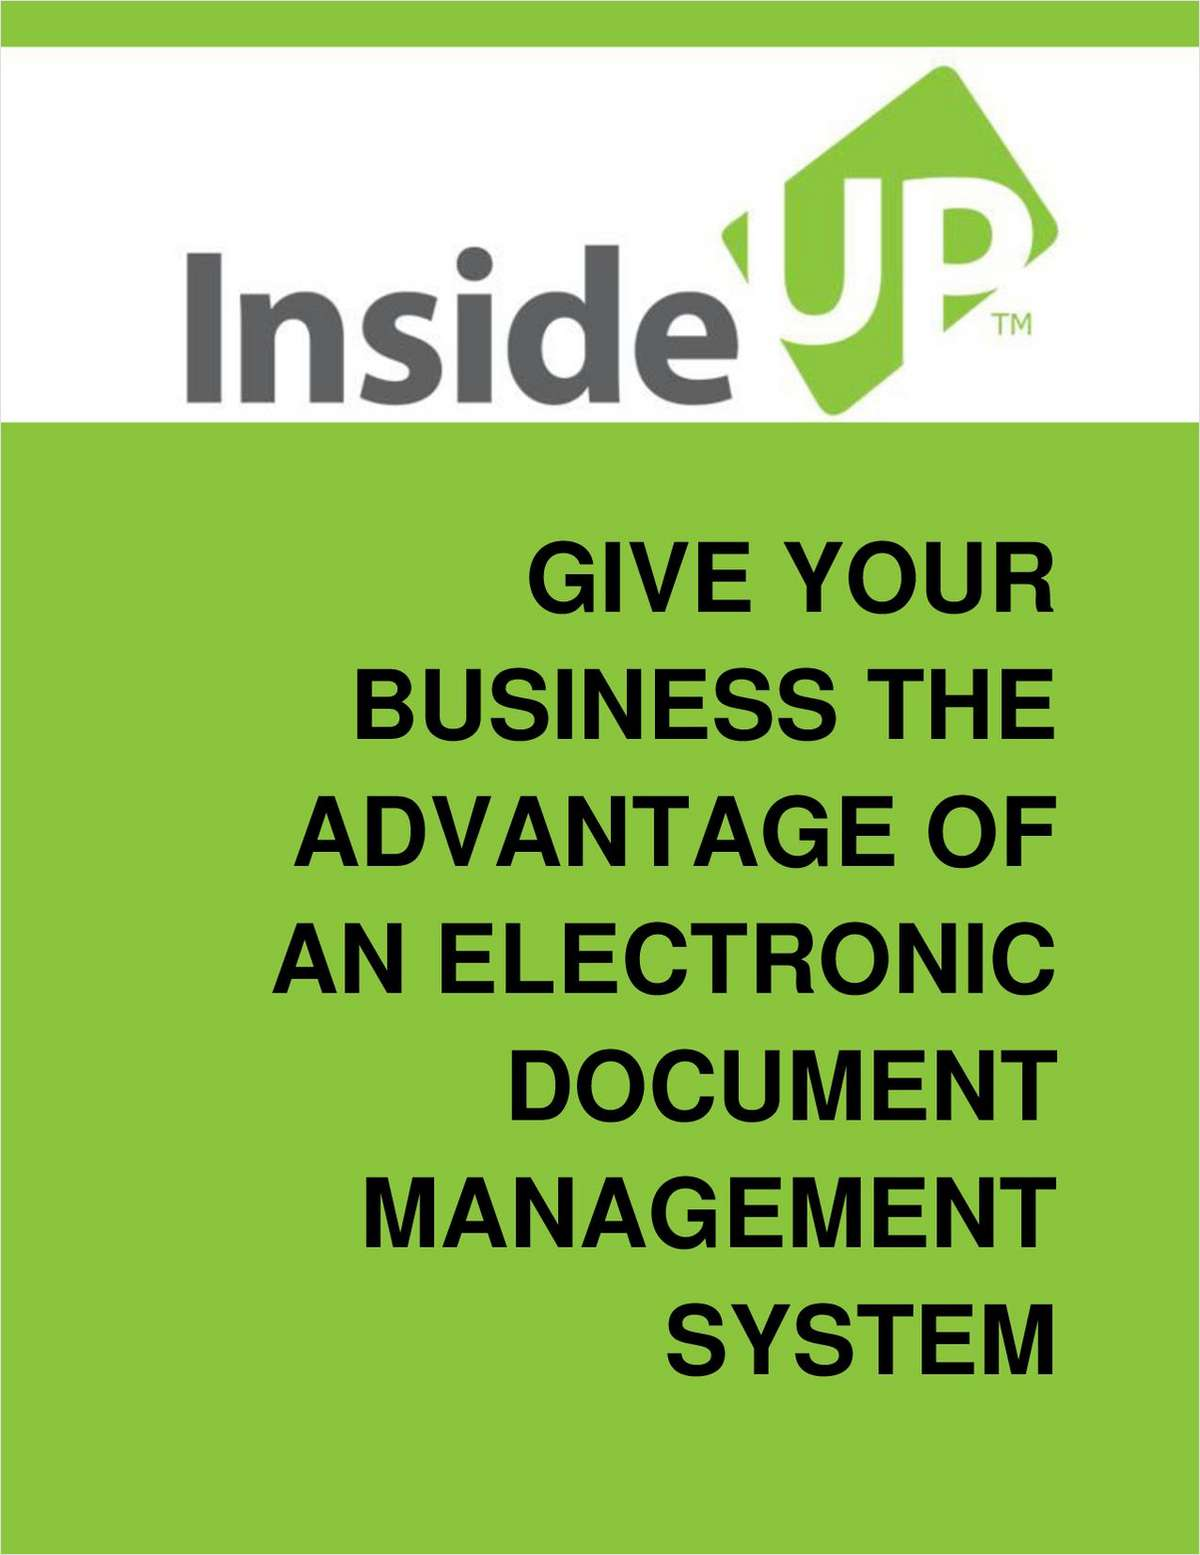 How Electronic Document Management Systems Can Increase Business Productivity By 20%